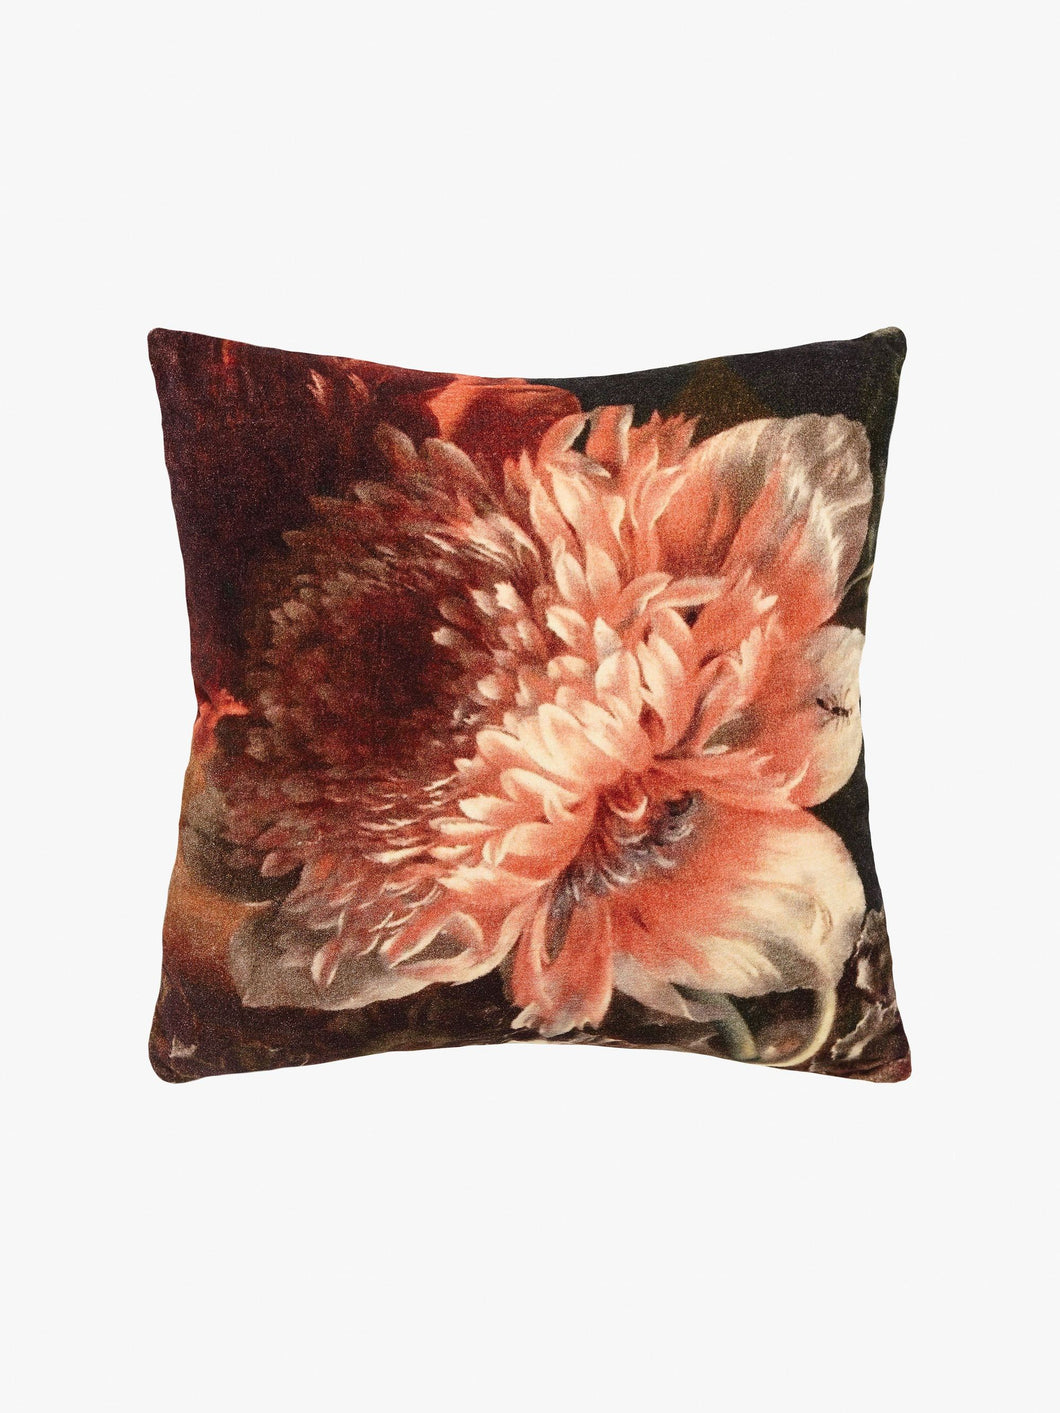 Splendour Cushion - Velvet Autumn Floral Cushion